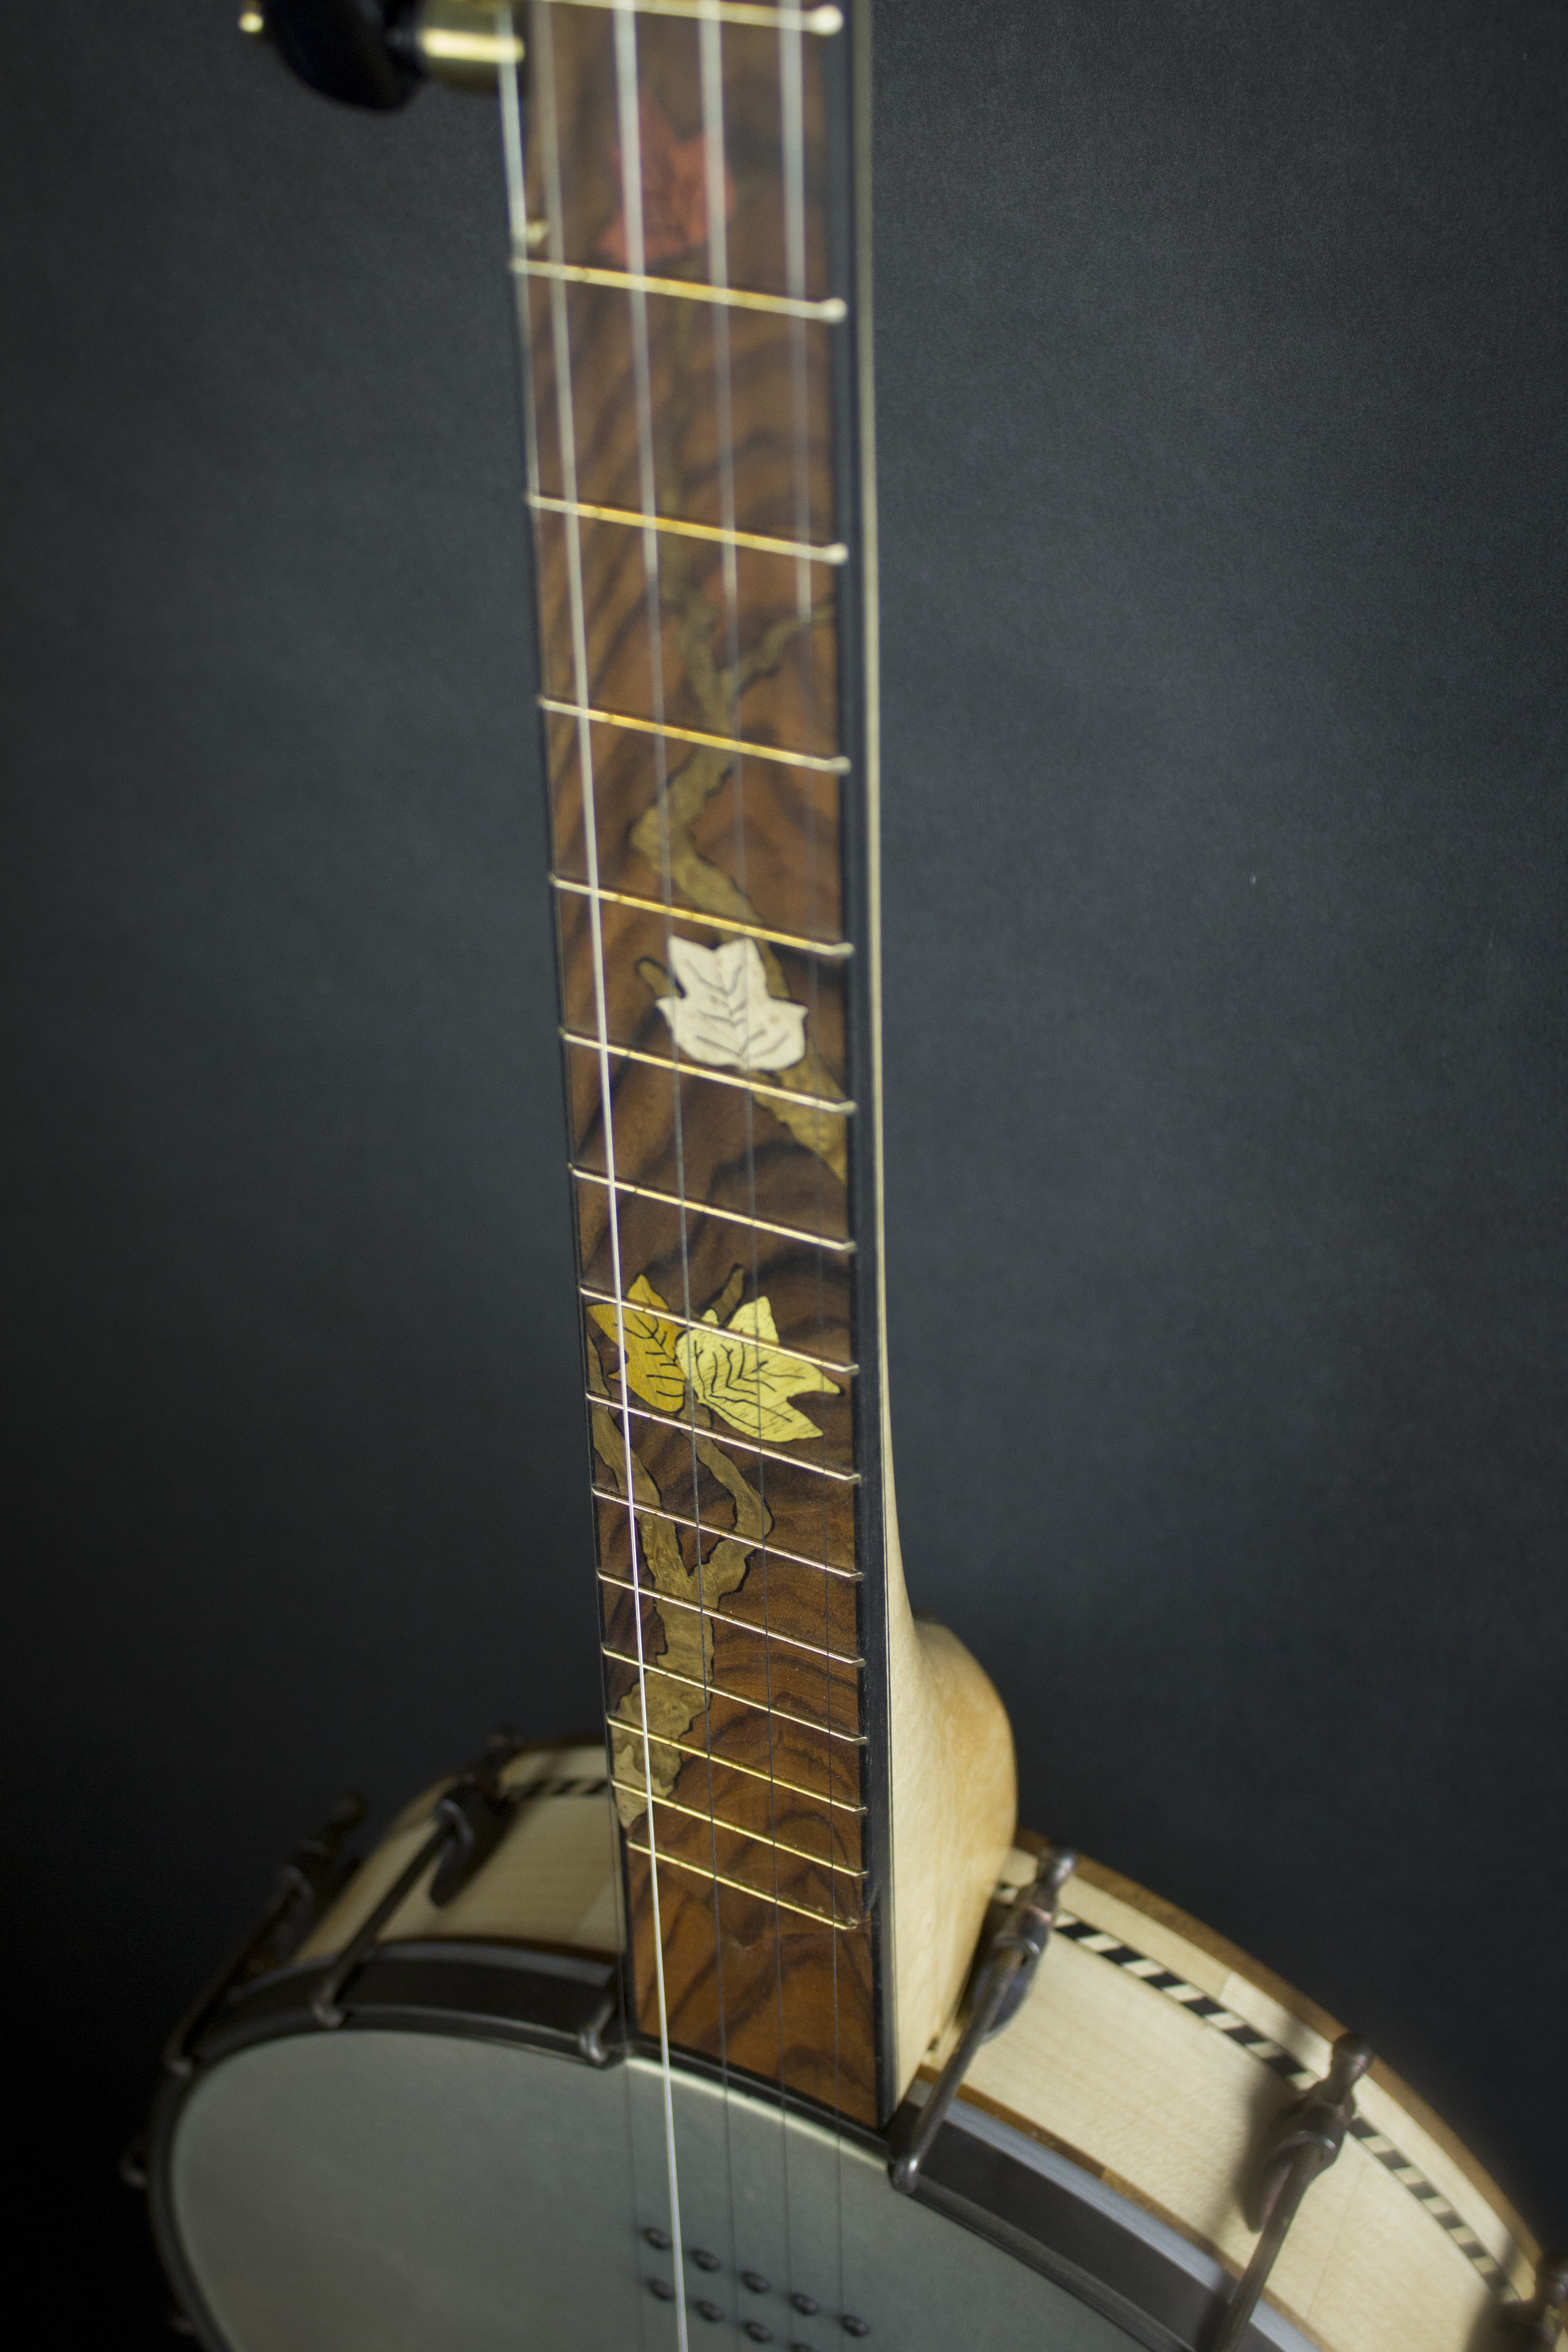 Leaves Banjo fretboard